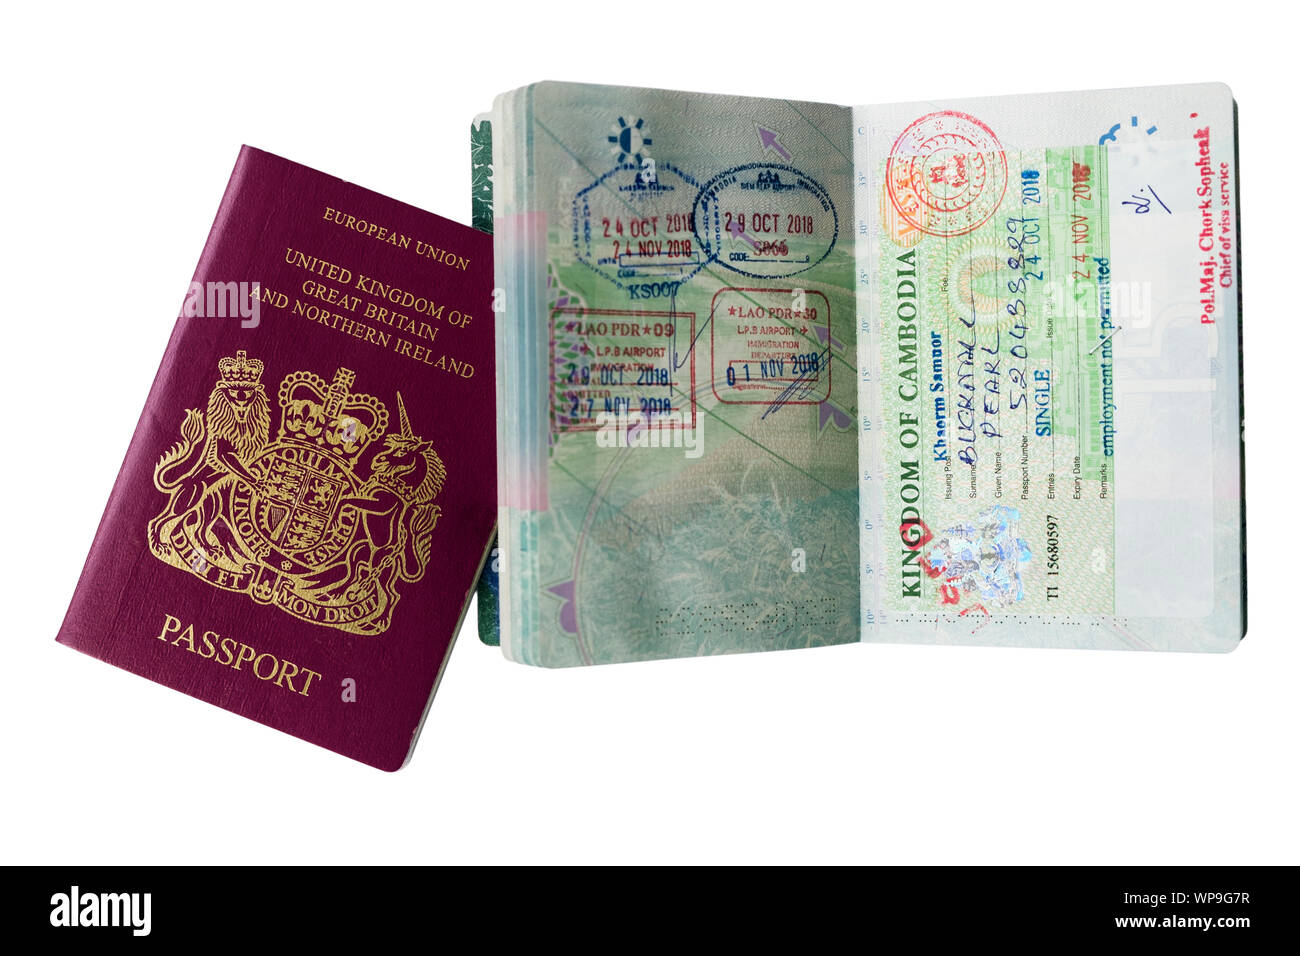 European Union British Passport for United Kingdom and Northern Ireland with Cambodia visa and Lao stamps on open pages isolated on white. England UK Stock Photo